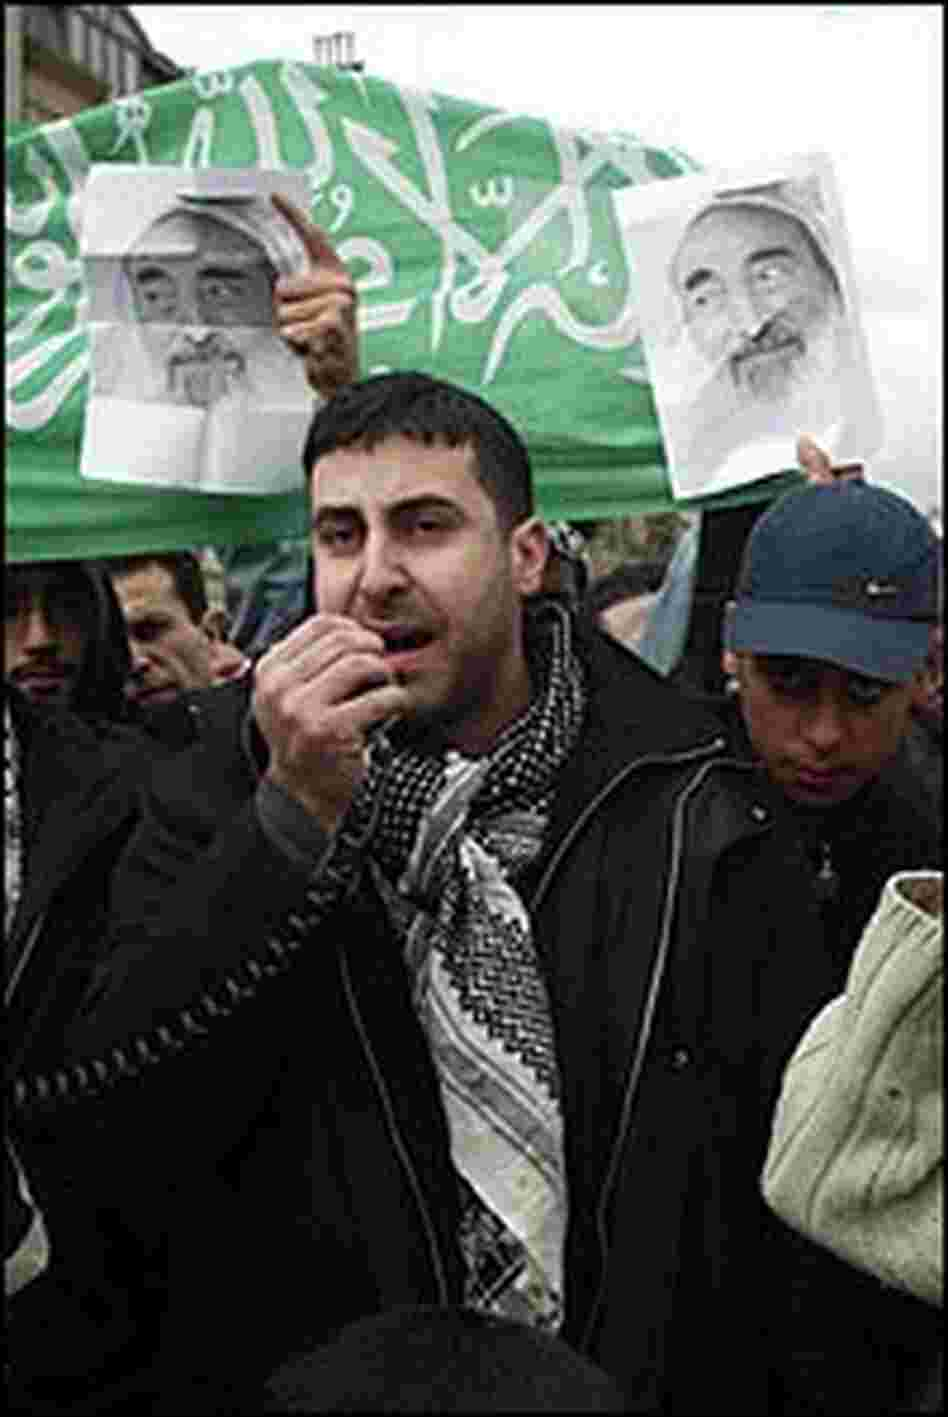 Dyab Abou Jahjah leads a protest of the killing of Hamas spiritual leader Sheikh Ahmed Yassin.